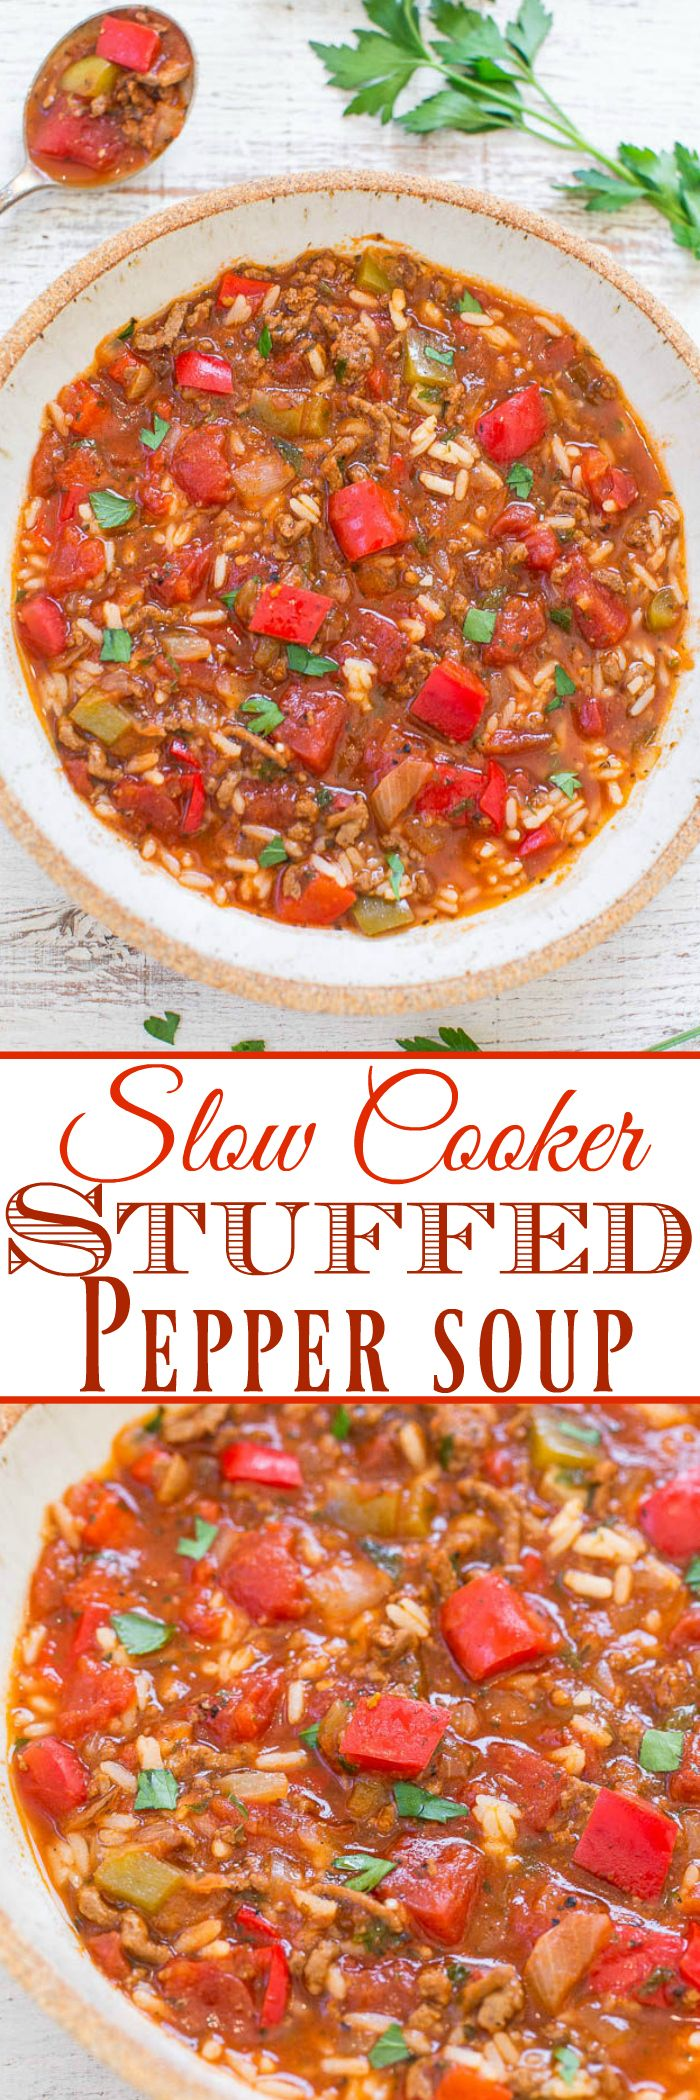 Slow Cooker Stuffed Pepper Soup - Stuffed peppers in HEARTY soup form and made in your SLOW COOKER!! Peppers, onions, ground beef, tomatoes, and rice in this EASY comfort food recipe!!